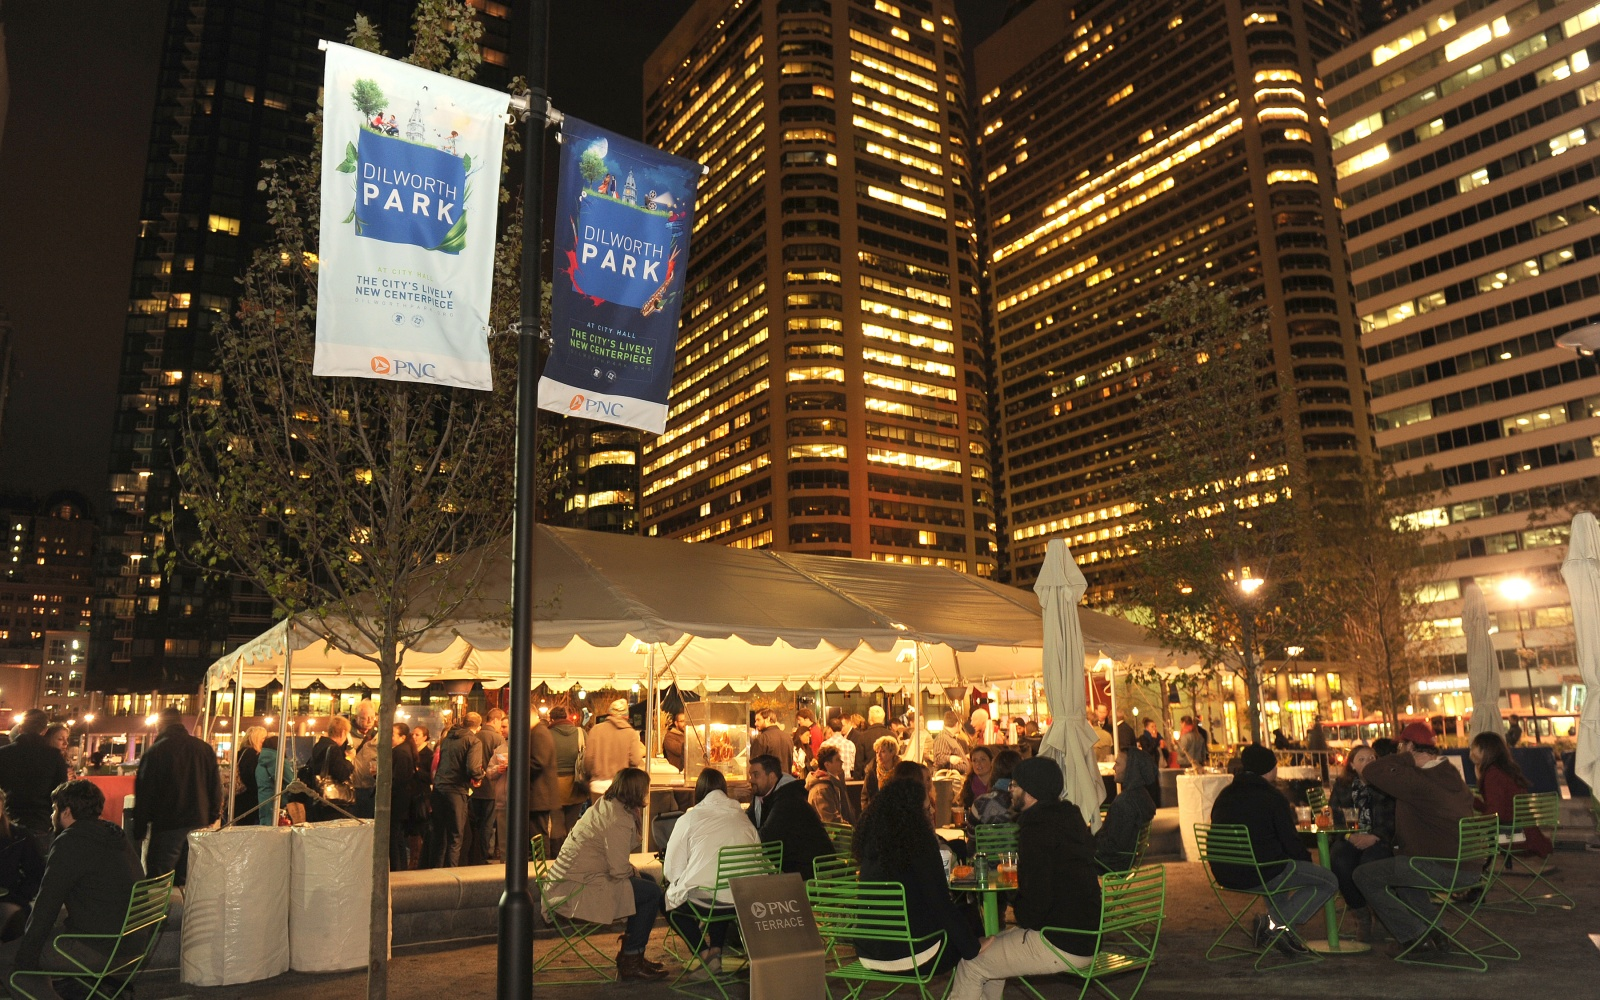 Philly Beer Gardens: Dilworth Park